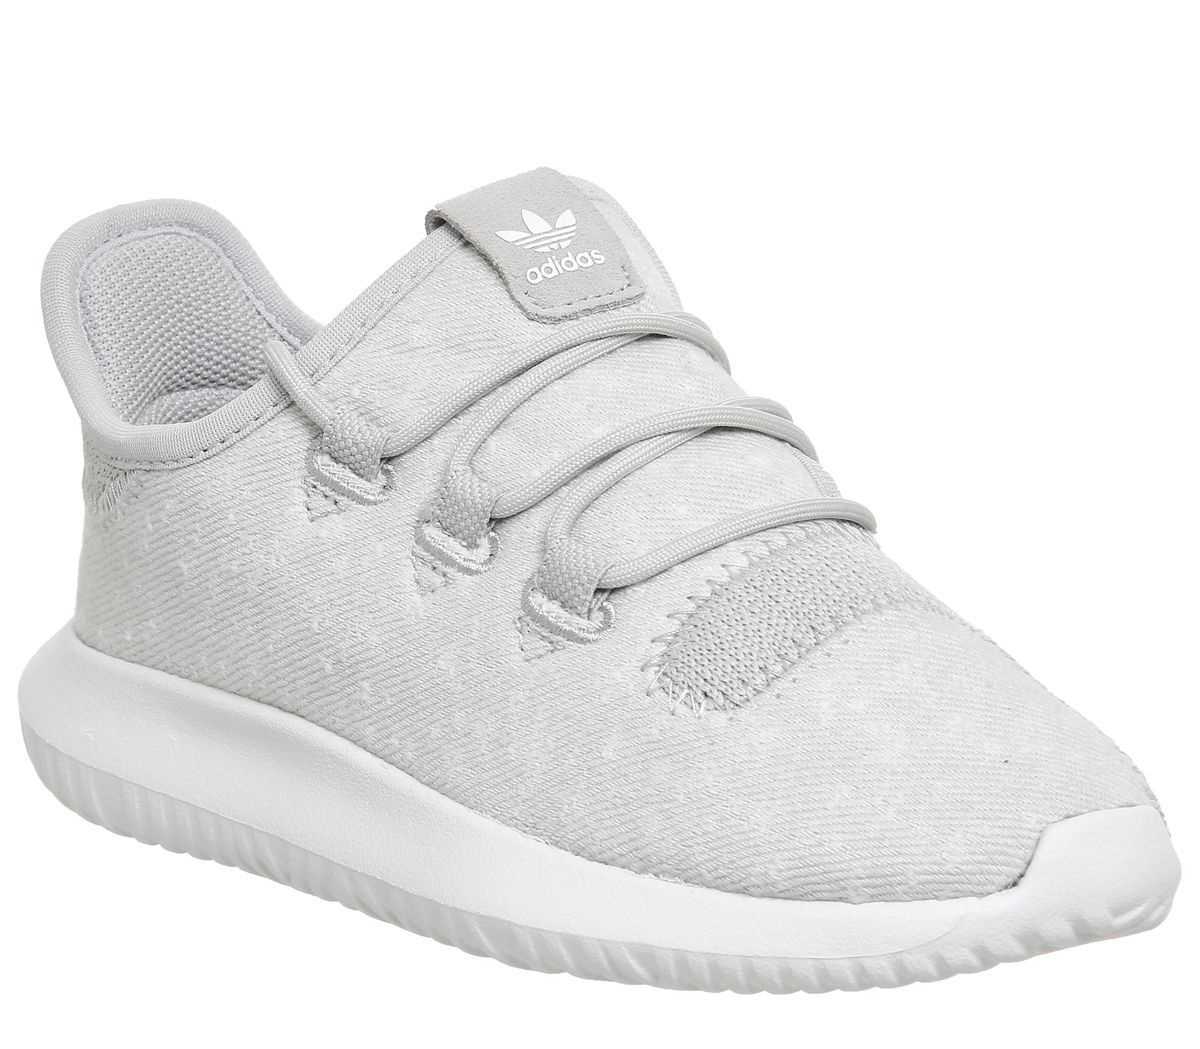 the best attitude 03da4 395ad Tubular Shadow Kids